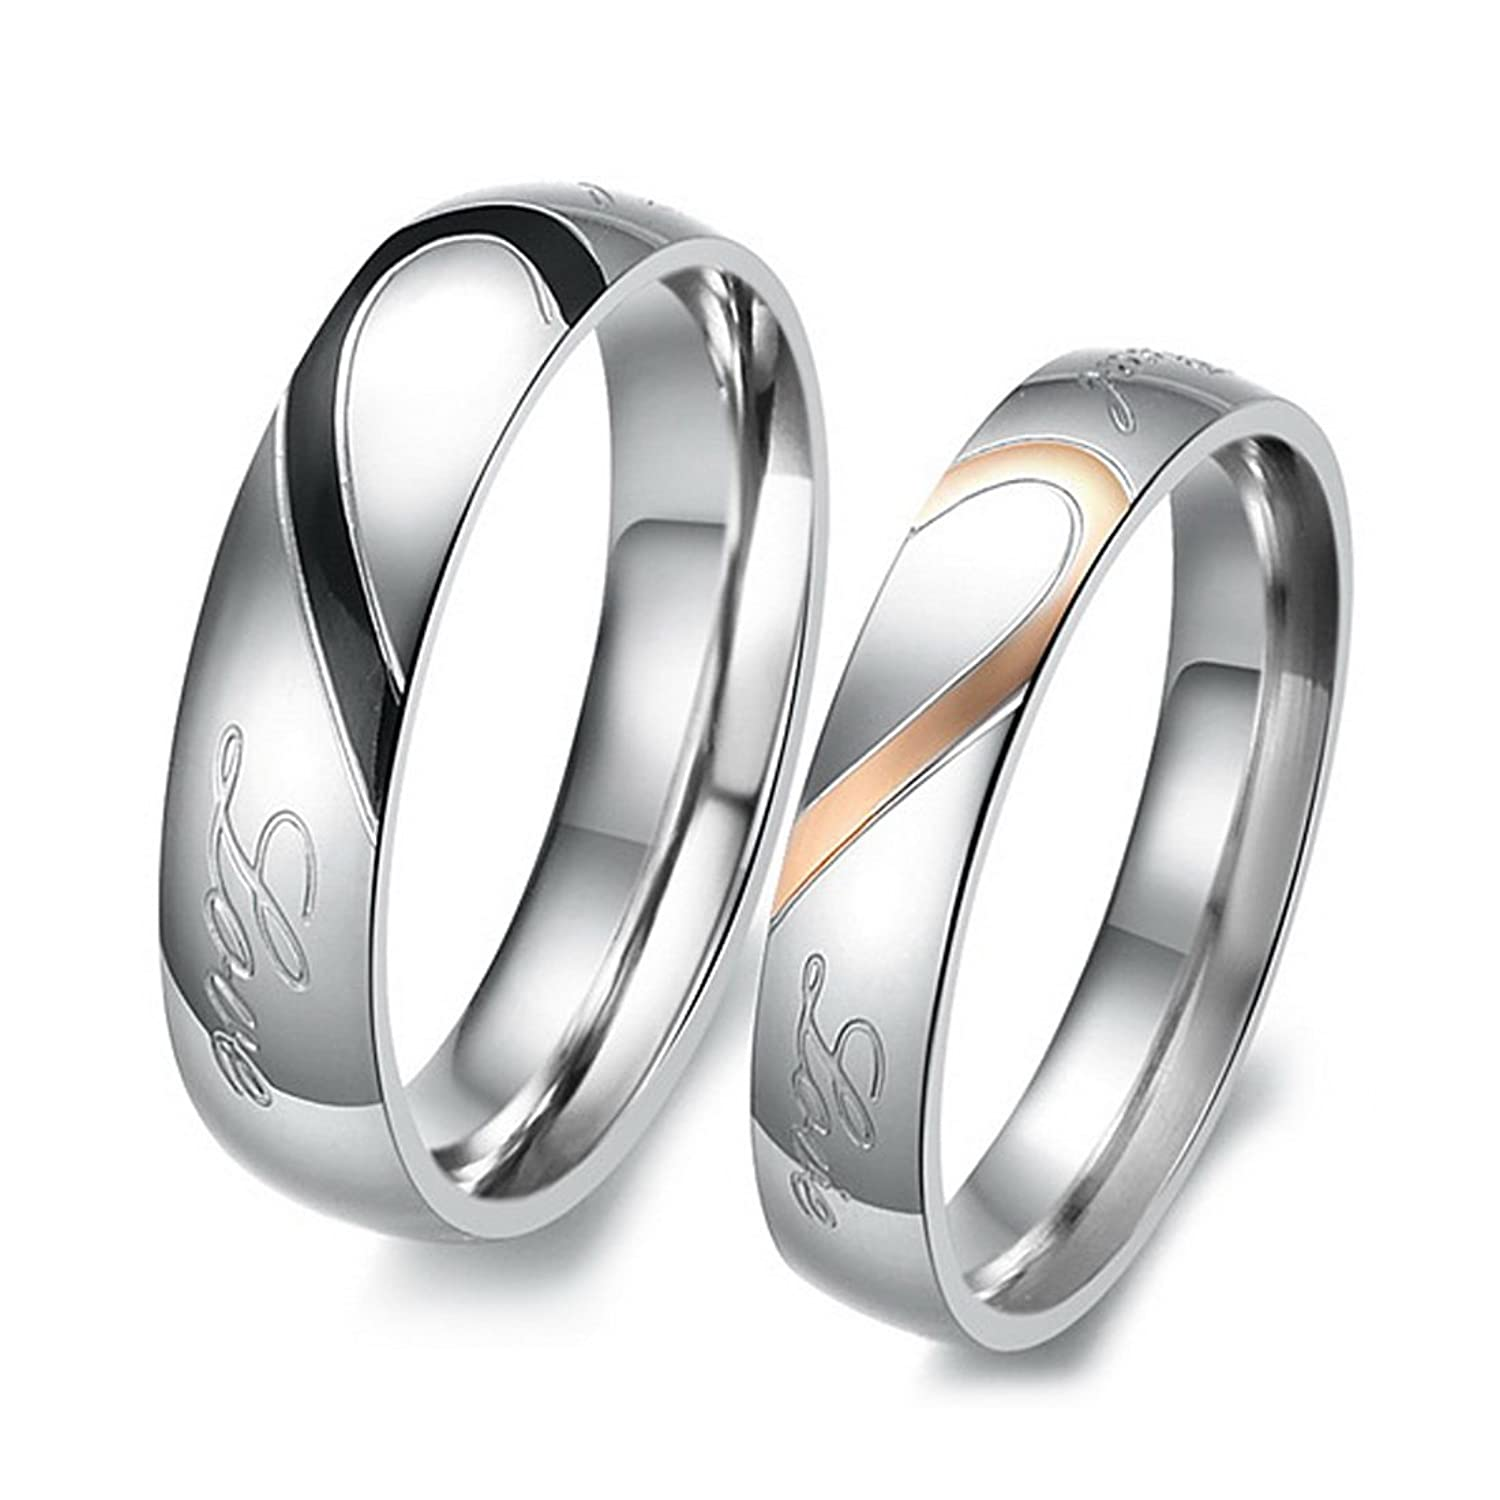 love ring gift finger anillo s style forever and promise bands day men cheap for shipping item korean in jewelry valentine free couple rings uloveido women from engraved fashion wedding